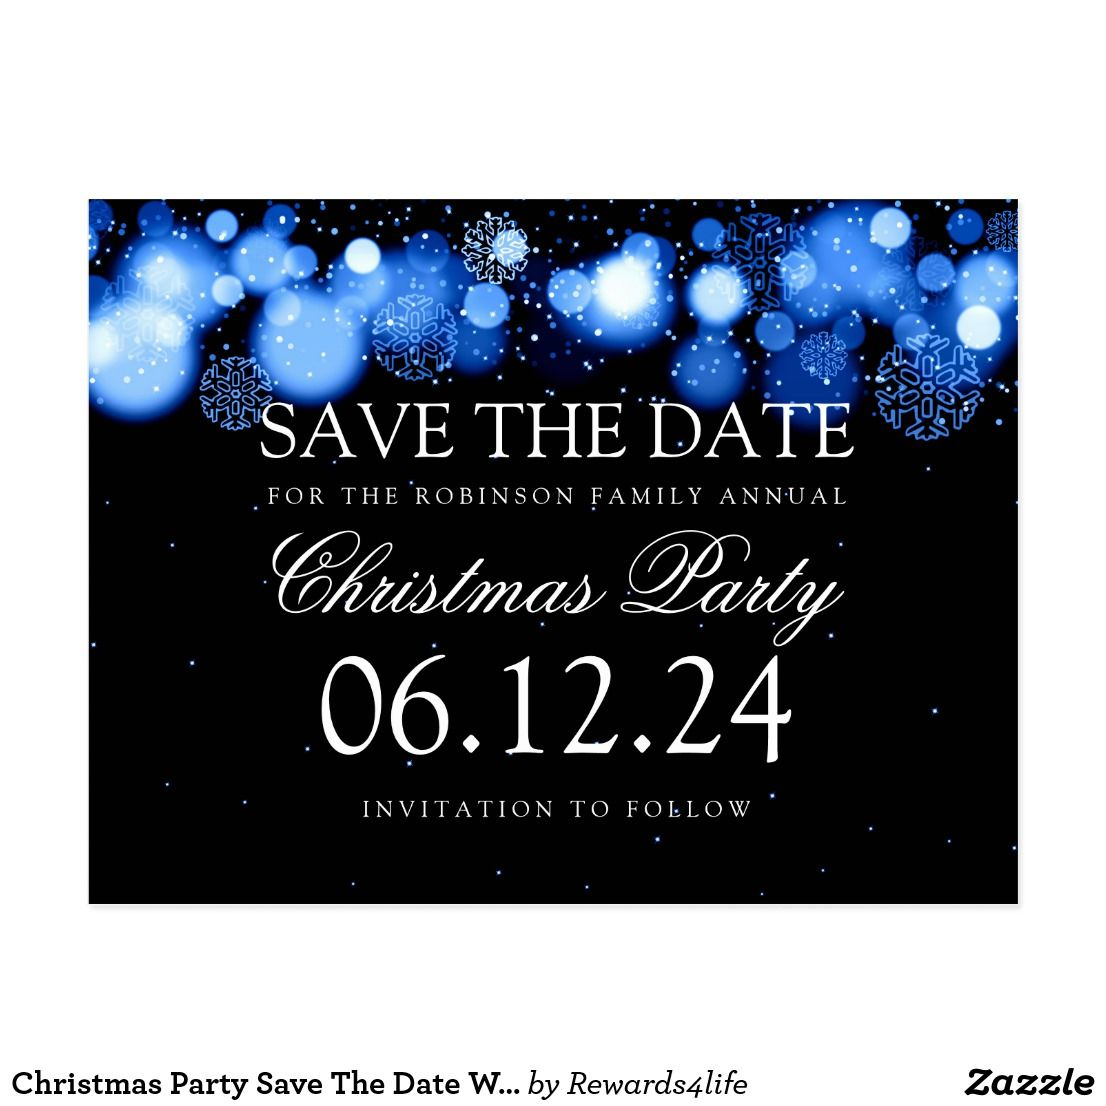 Christmas Party Save The Date Cards.Christmas Party Save The Date Winter Wonder Blue